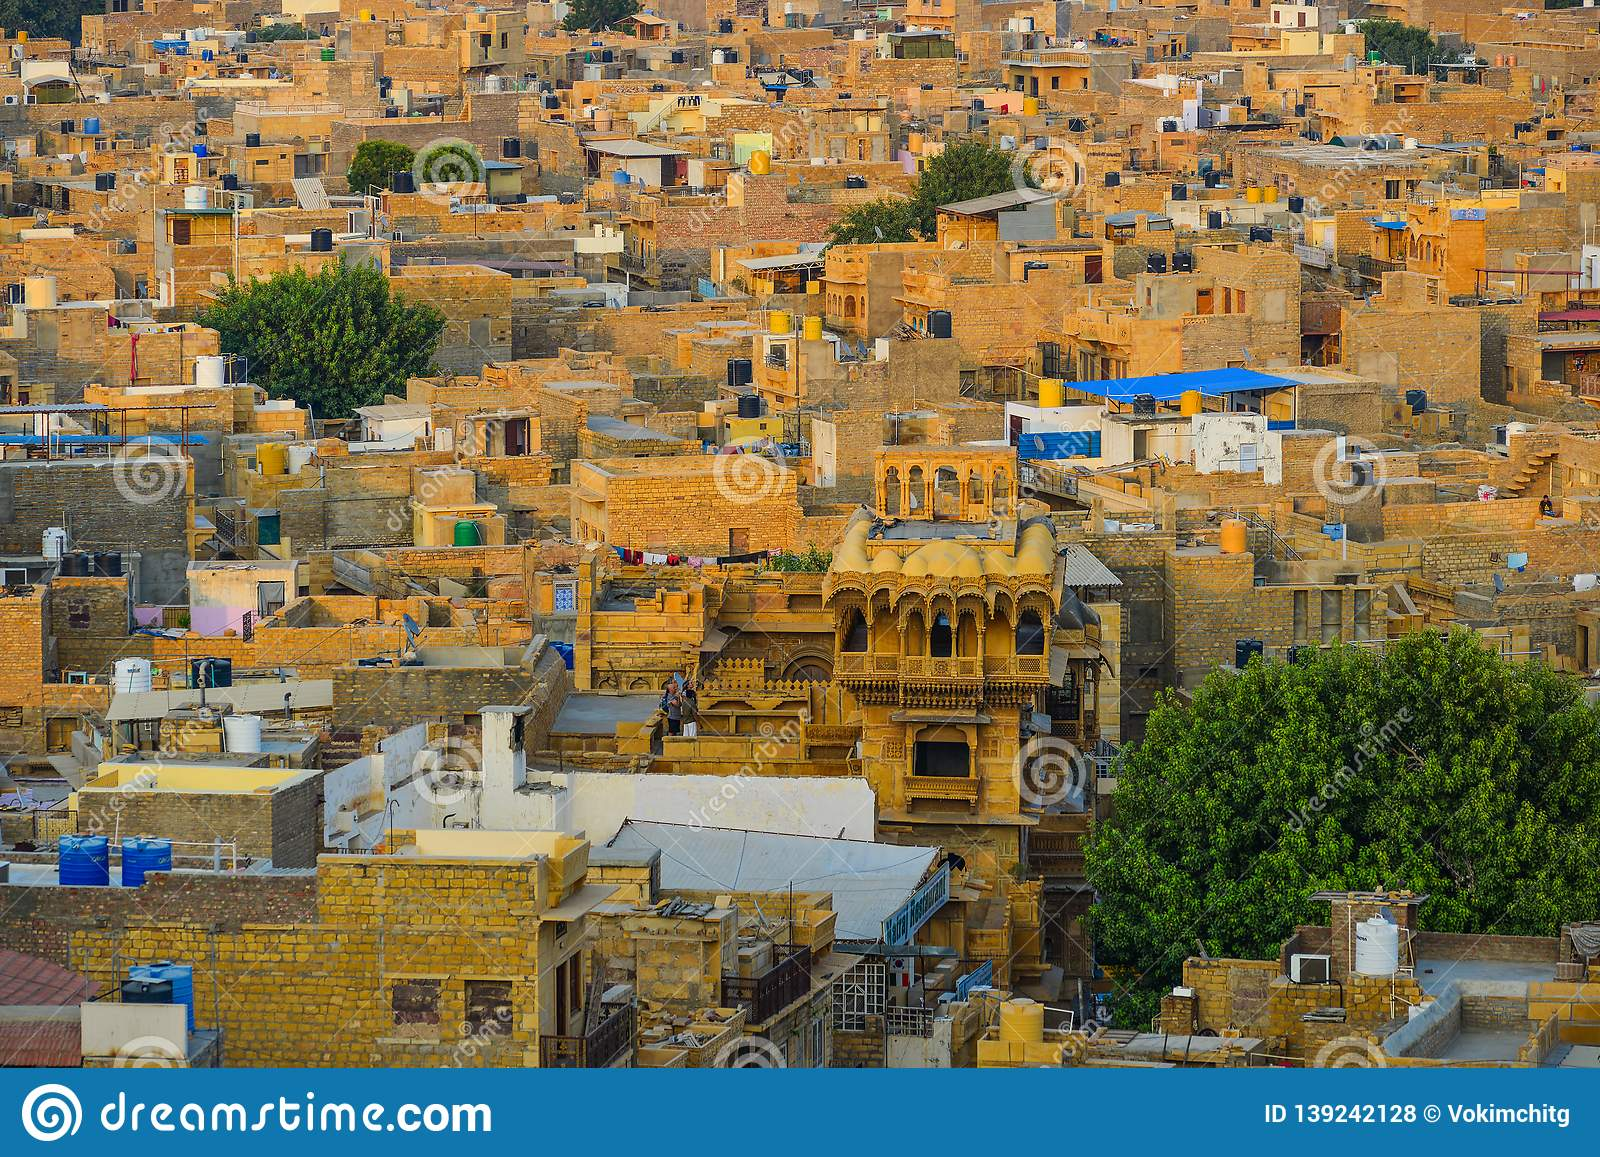 Old Buildings In Jaisalmer, India Stock Photo - Image of